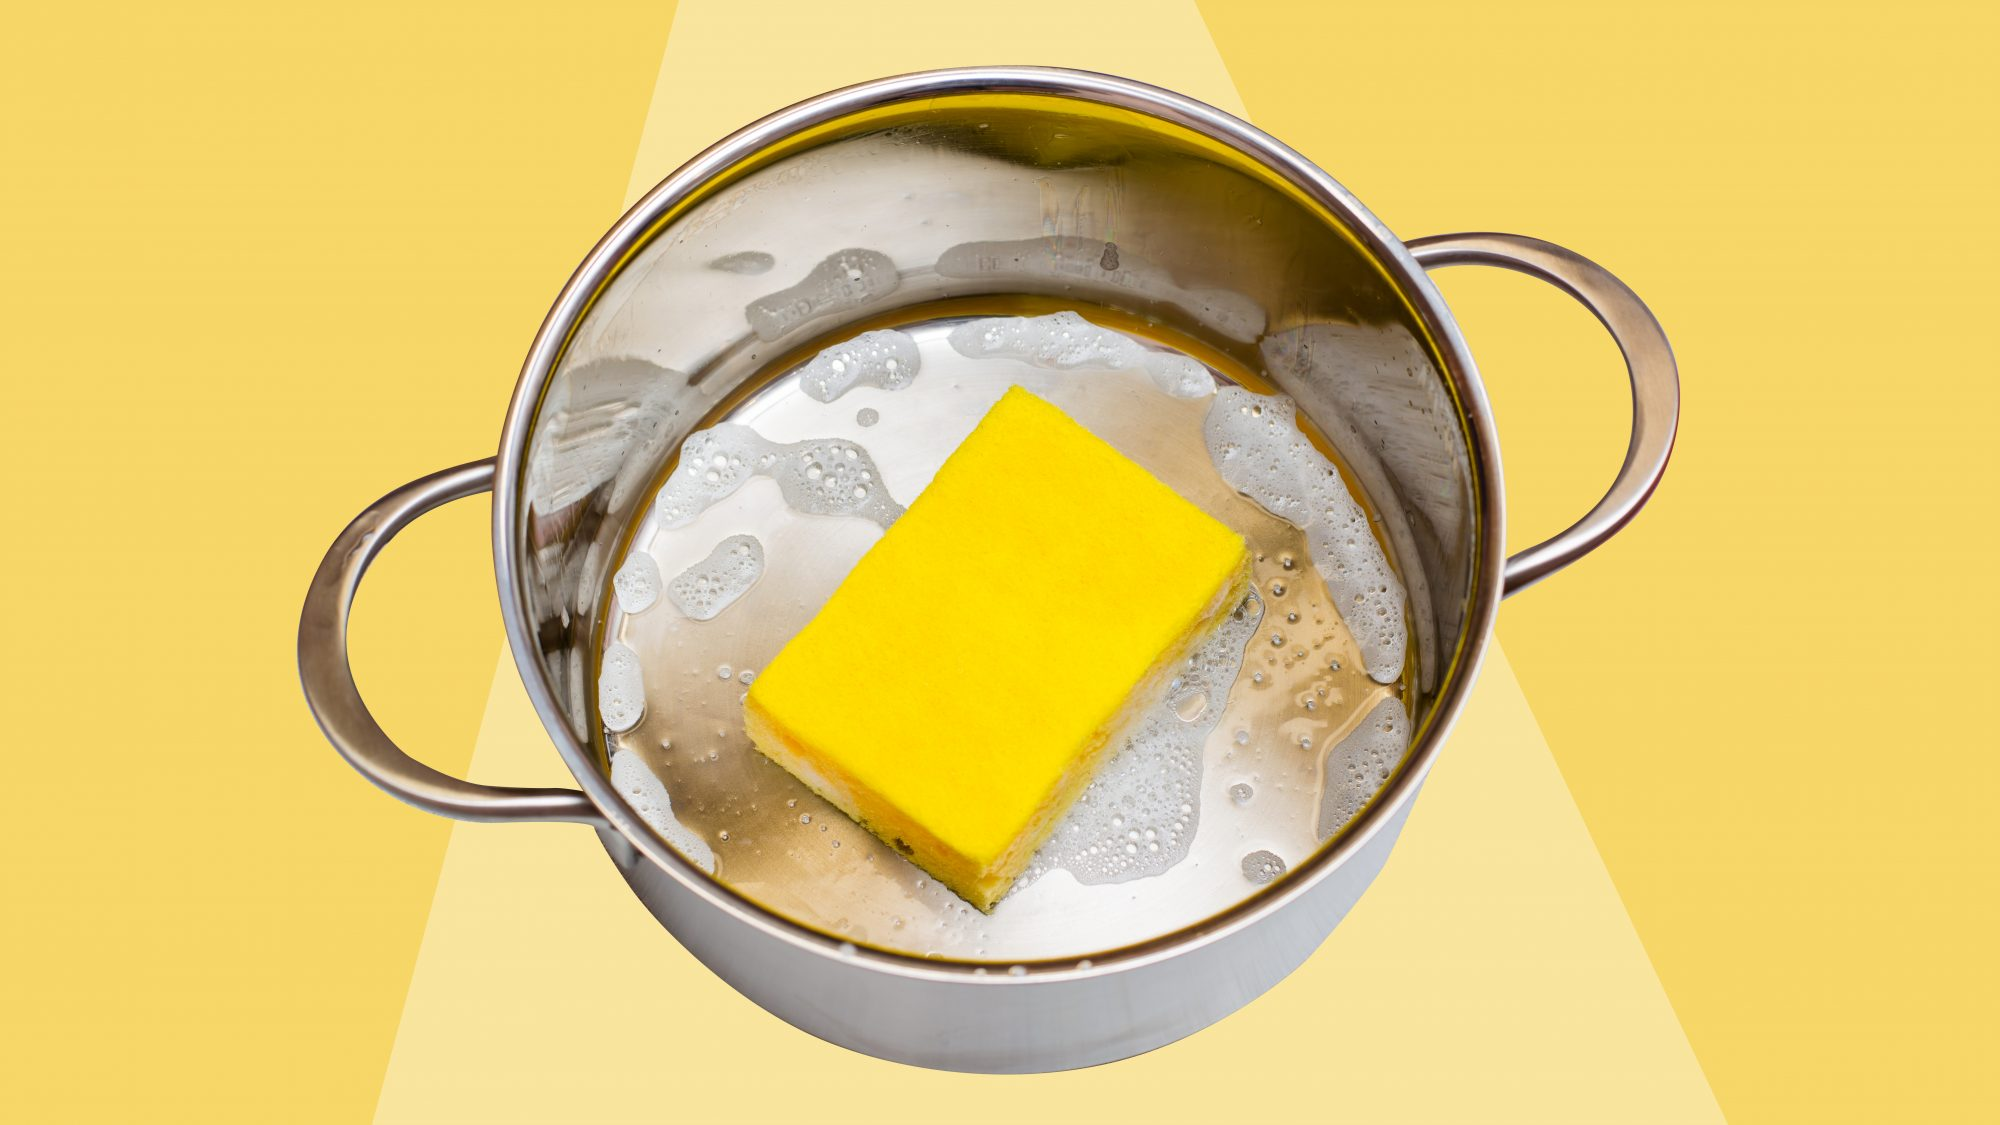 stainless steel cookware with yellow sponge